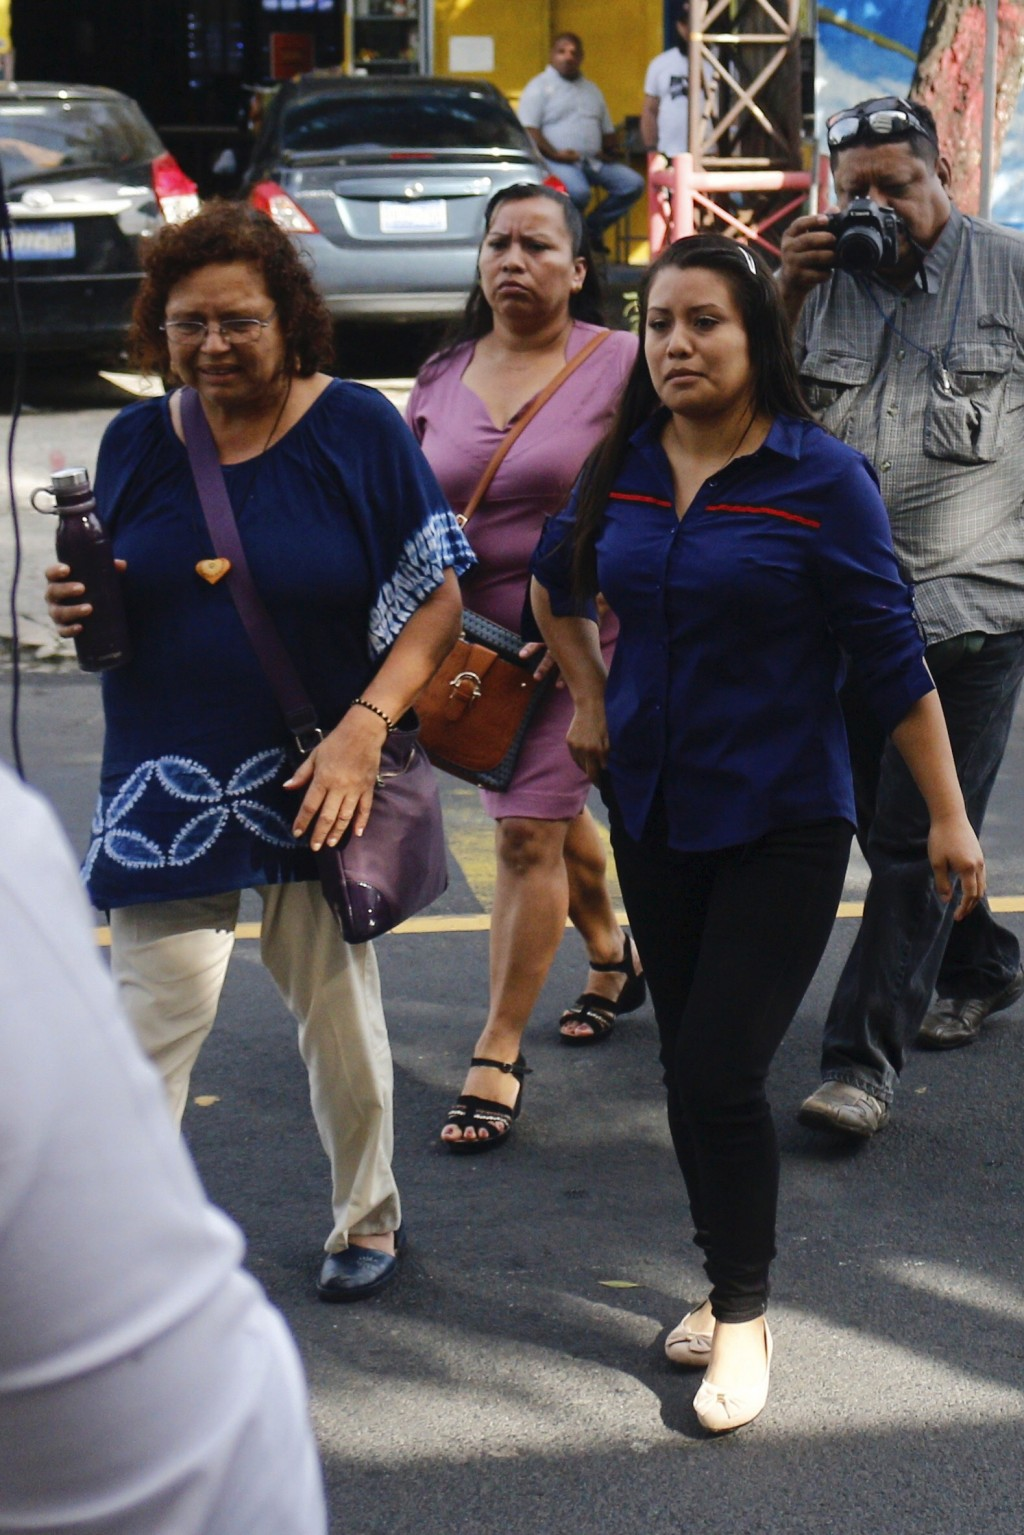 Evelyn Beatriz Hernandez, right, arrives to court for a new trial with a new judge, after her 30-year sentence for abortion was overturned in February...